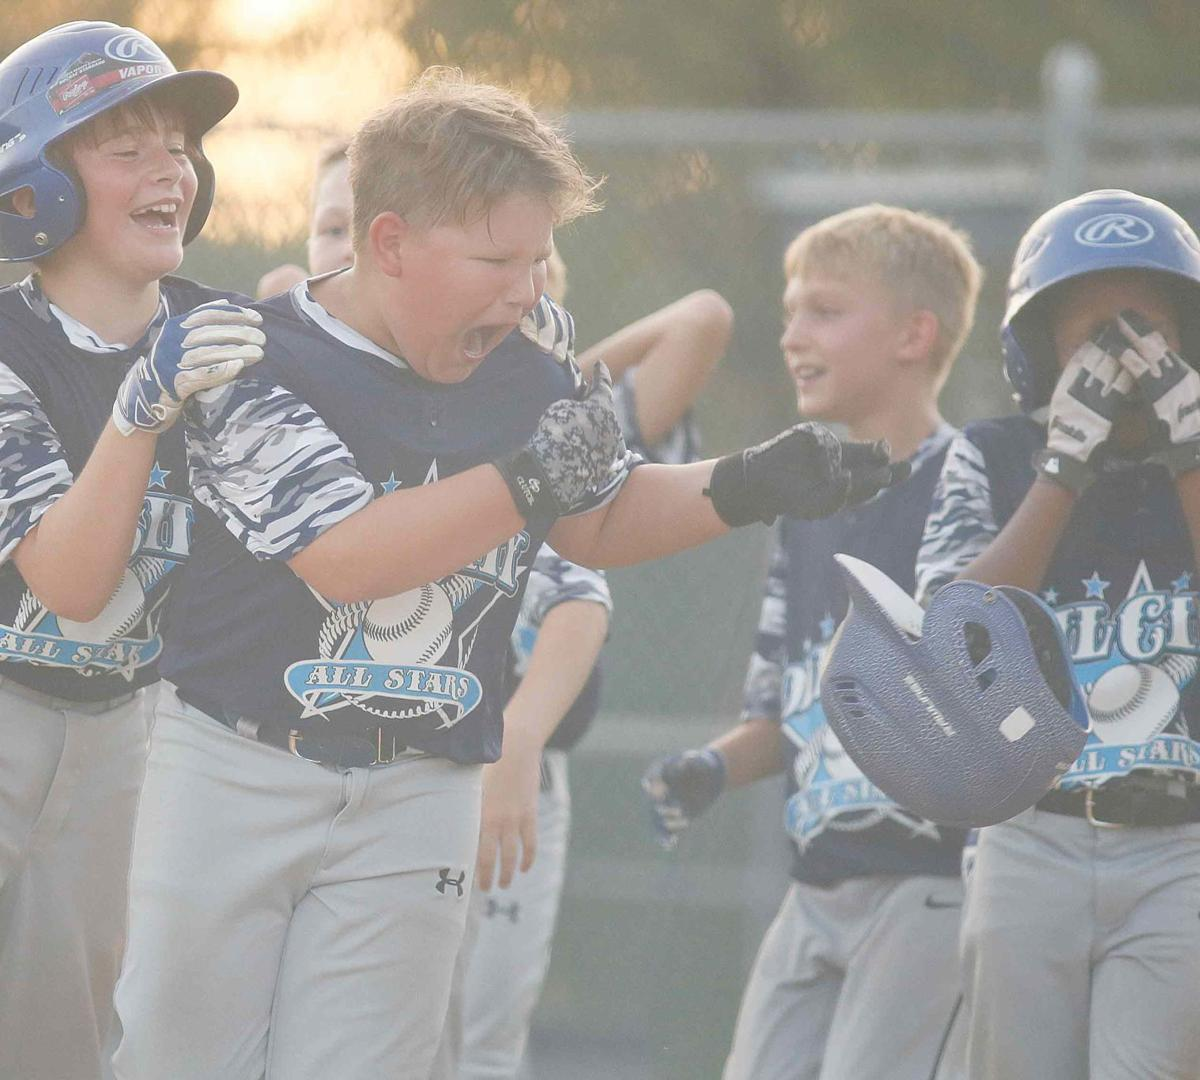 Oil City rallies in wild sixth inning for 16-15 win over Franklin